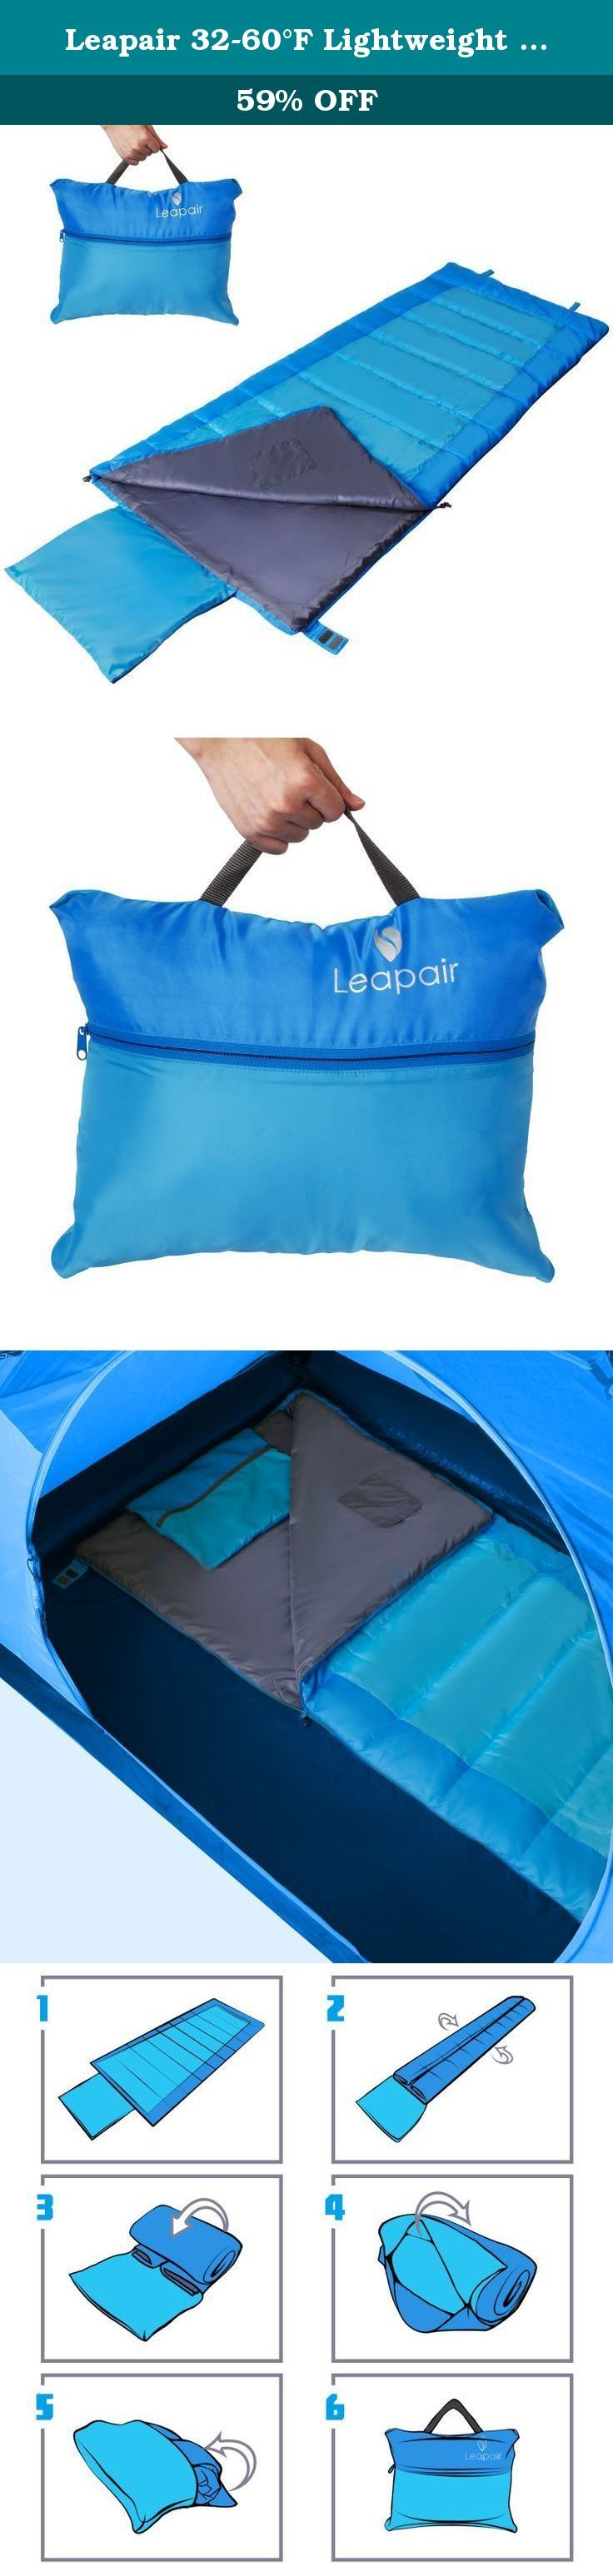 Leapair 32-60°F Lightweight Envelope Sleeping Bag with Storage Bag. Enjoy a great night's sleep anywhere with the Leapair Lightweight Sleeping Bag with Storage Bag. With a comfort temperature range of 32-60°F, this durable, lightweight, and cozy sleeping bag delivers a comfortable sleep at the campsite, hostel, and other overnight stays. Made with a water-resistant polyester taffeta shell, this bag protects against moisture and tent condensation. Unzip the bottom to regulate temperature…